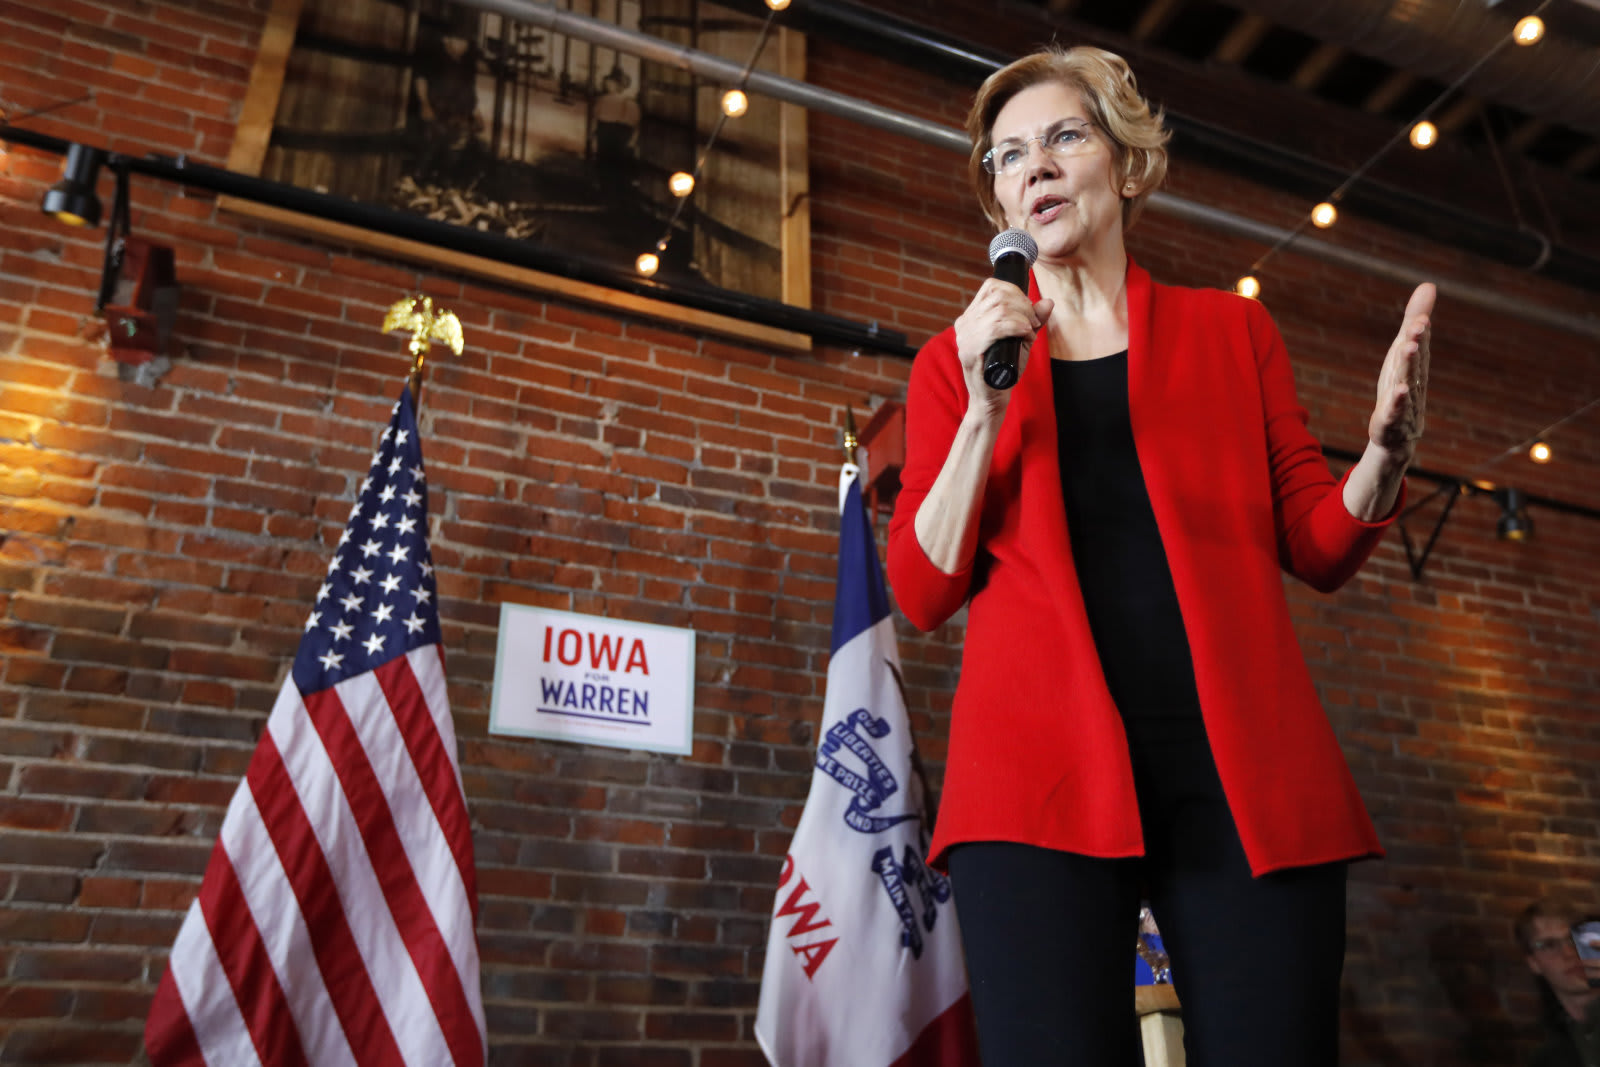 Election 2020 Warren, ASSOCIATED PRESS